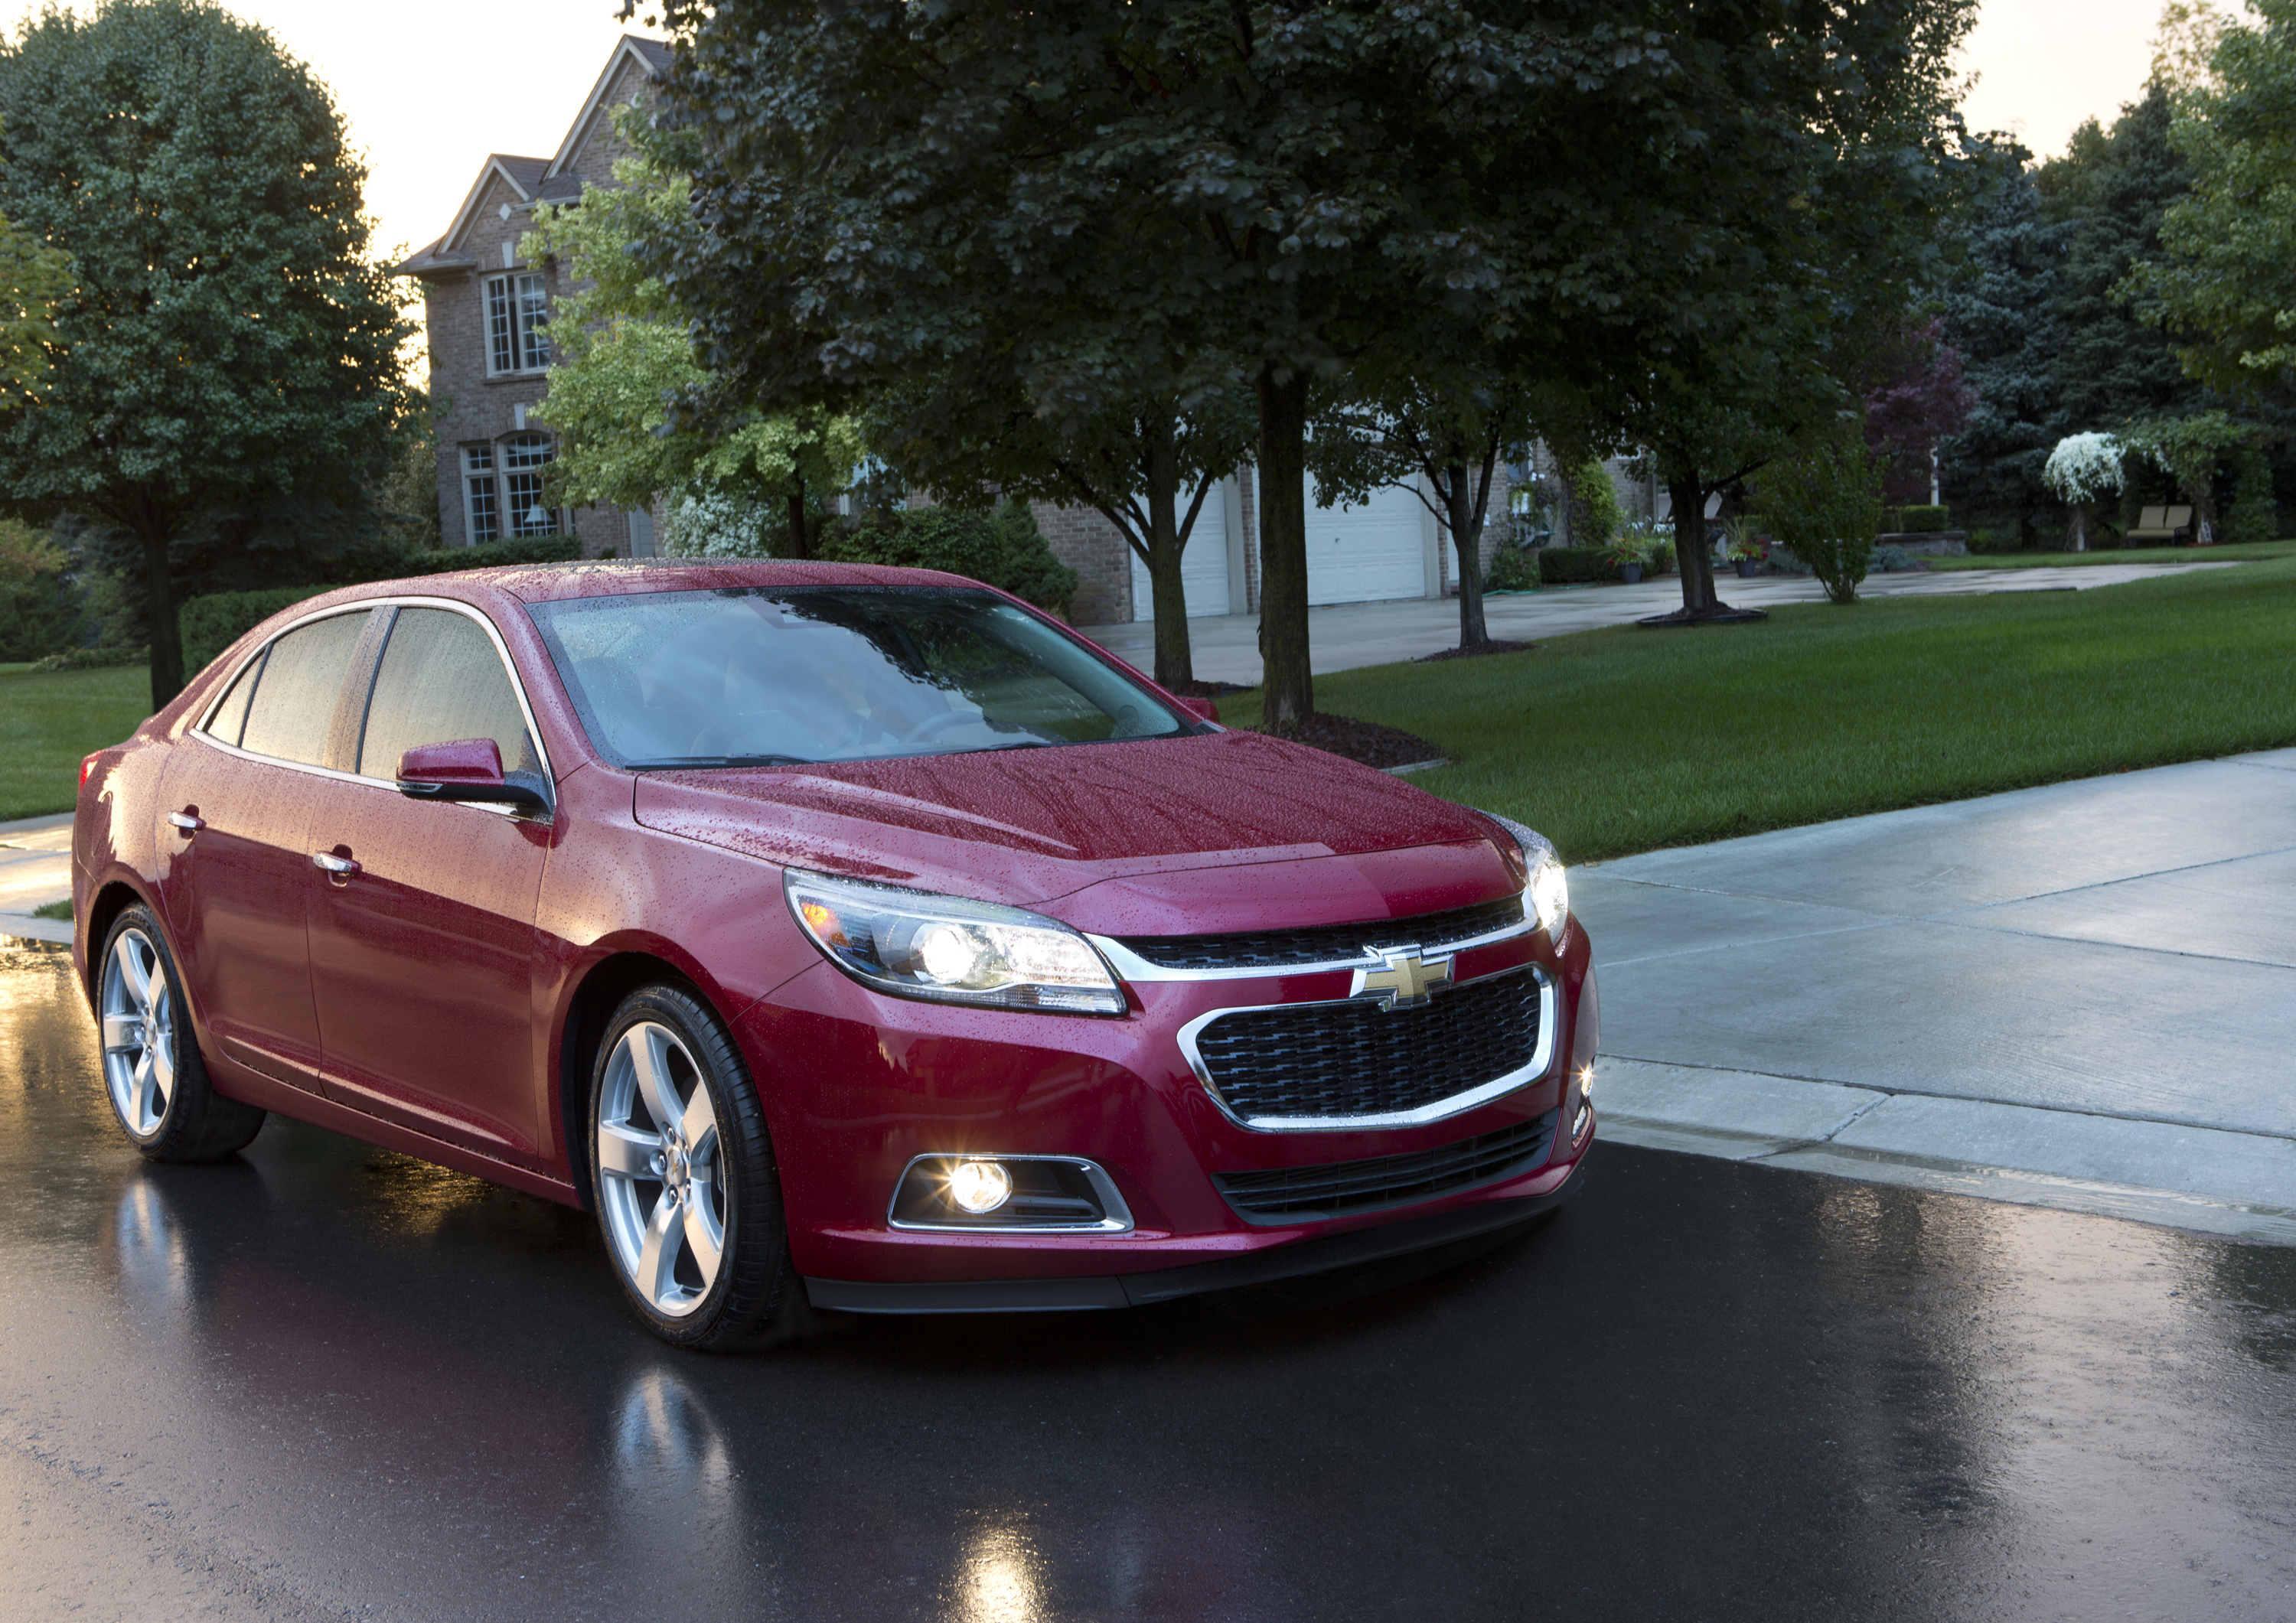 2014 Chevrolet Malibu 010 gm announces five safety recalls  at virtualis.co